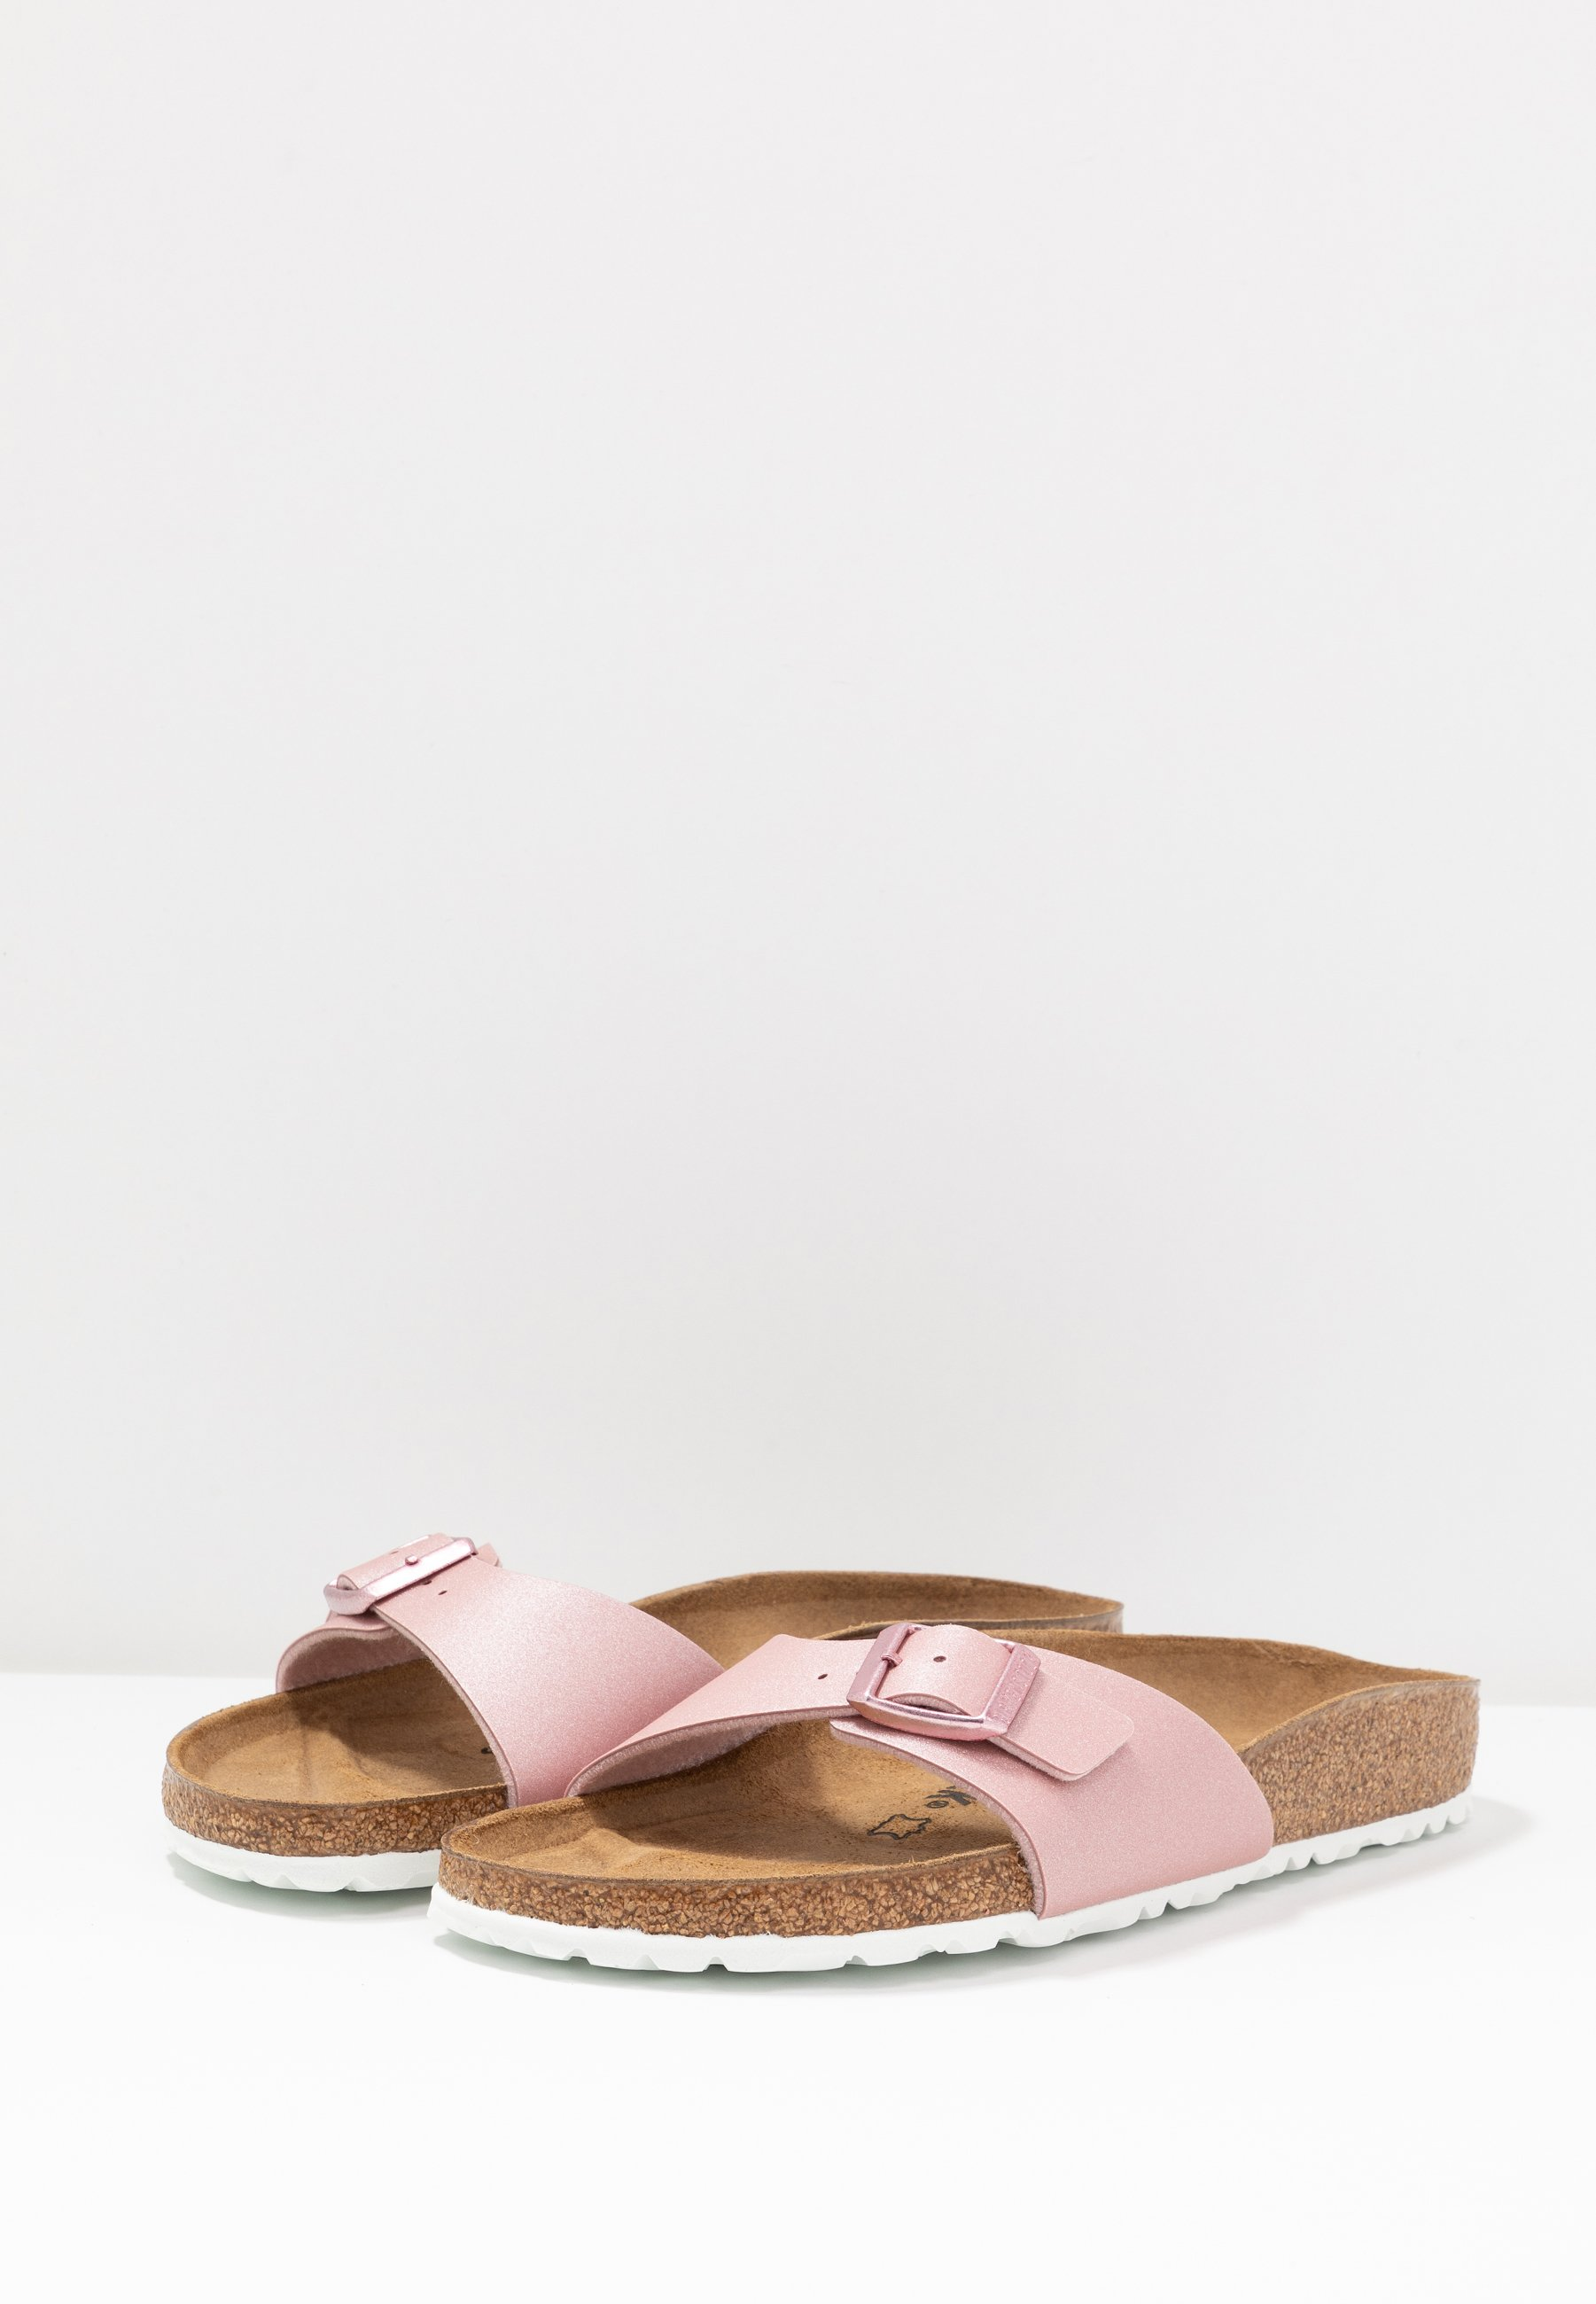 Birkenstock Madrid - Tofflor & Inneskor Icy Metallic/old Rose